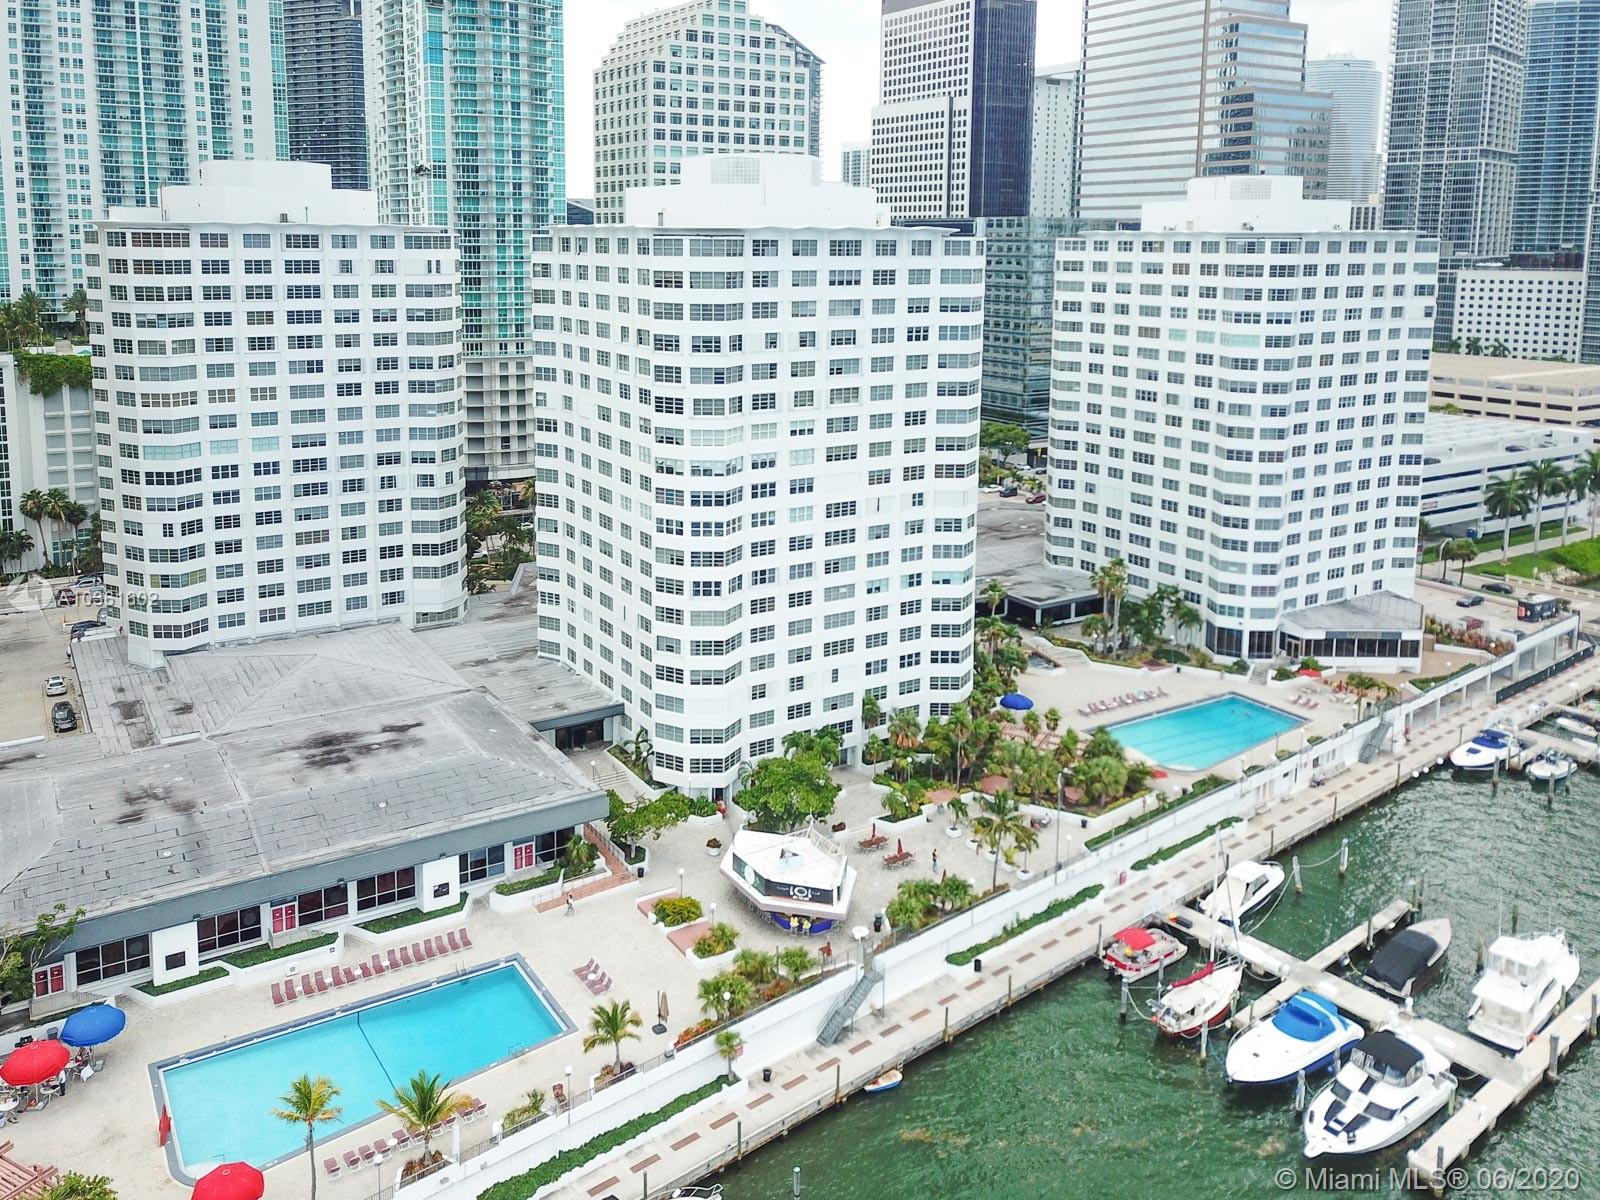 825 BRICKELL BAY DR # 246, Miami, Florida 33131, ,Commercial Sale,For Sale,825 BRICKELL BAY DR # 246,A10361602